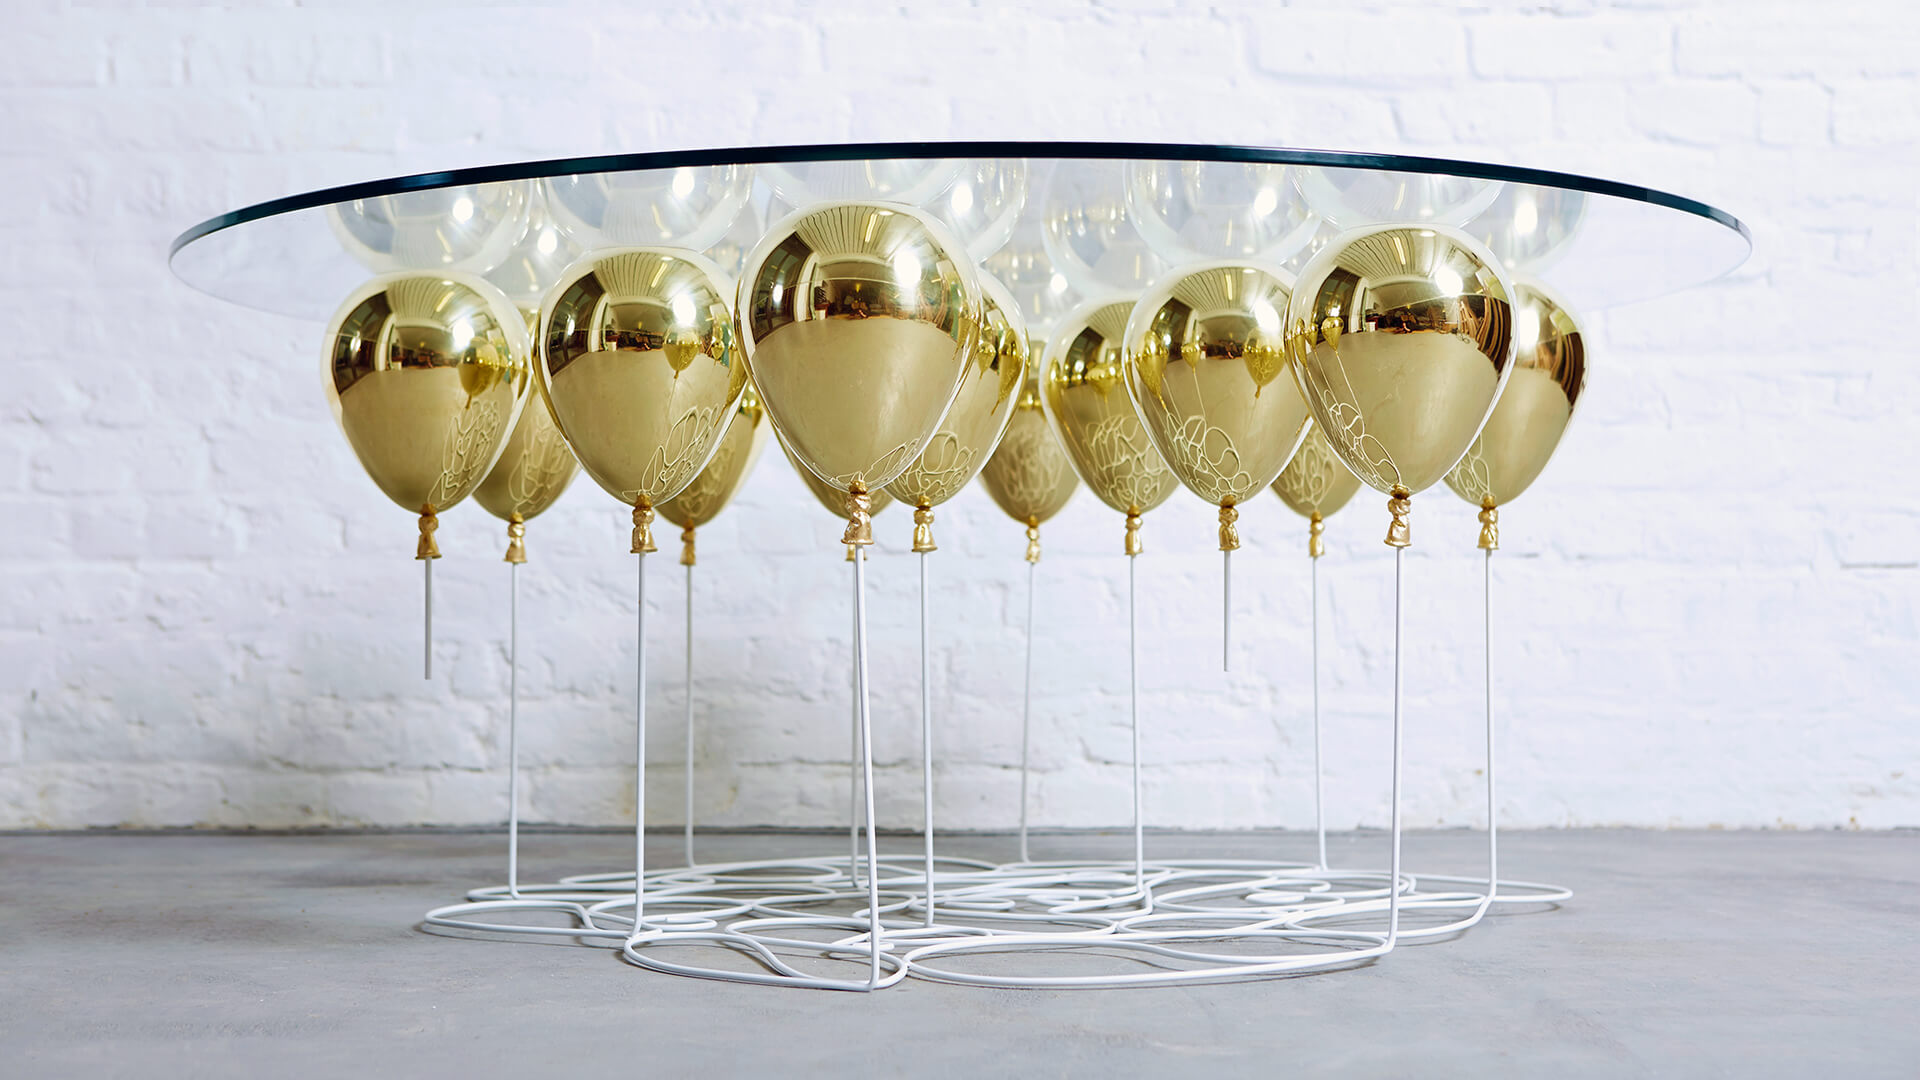 Balloon Coffee Round_Carousel Images_01